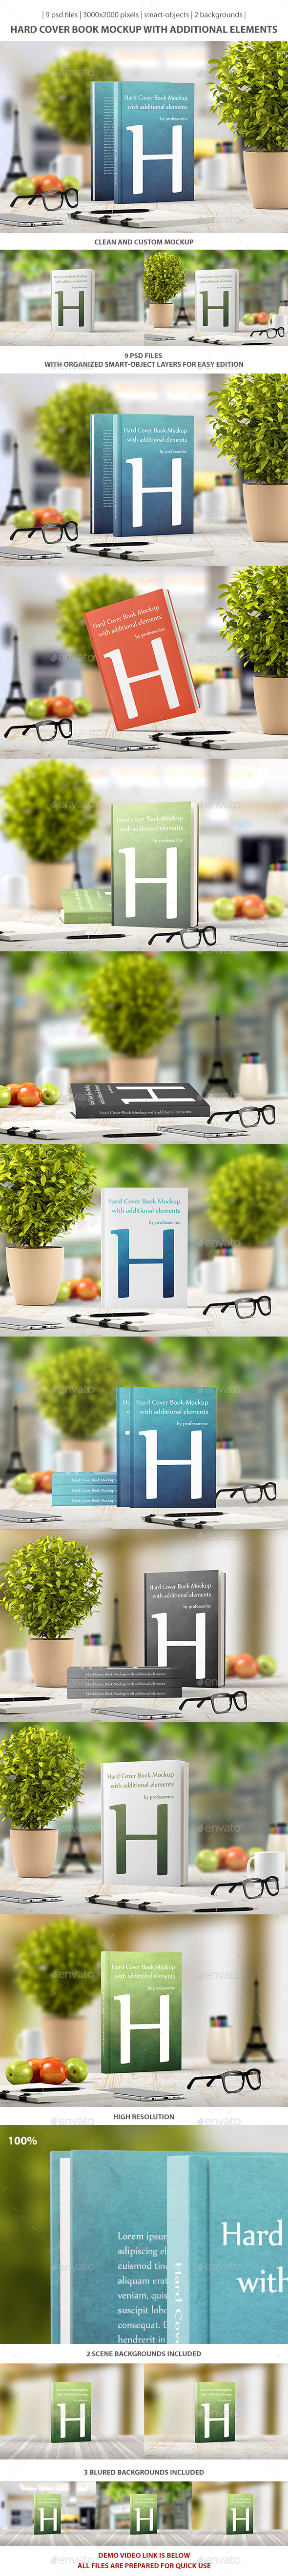 GraphicRiver Hard Cover Book Mockup 9435271